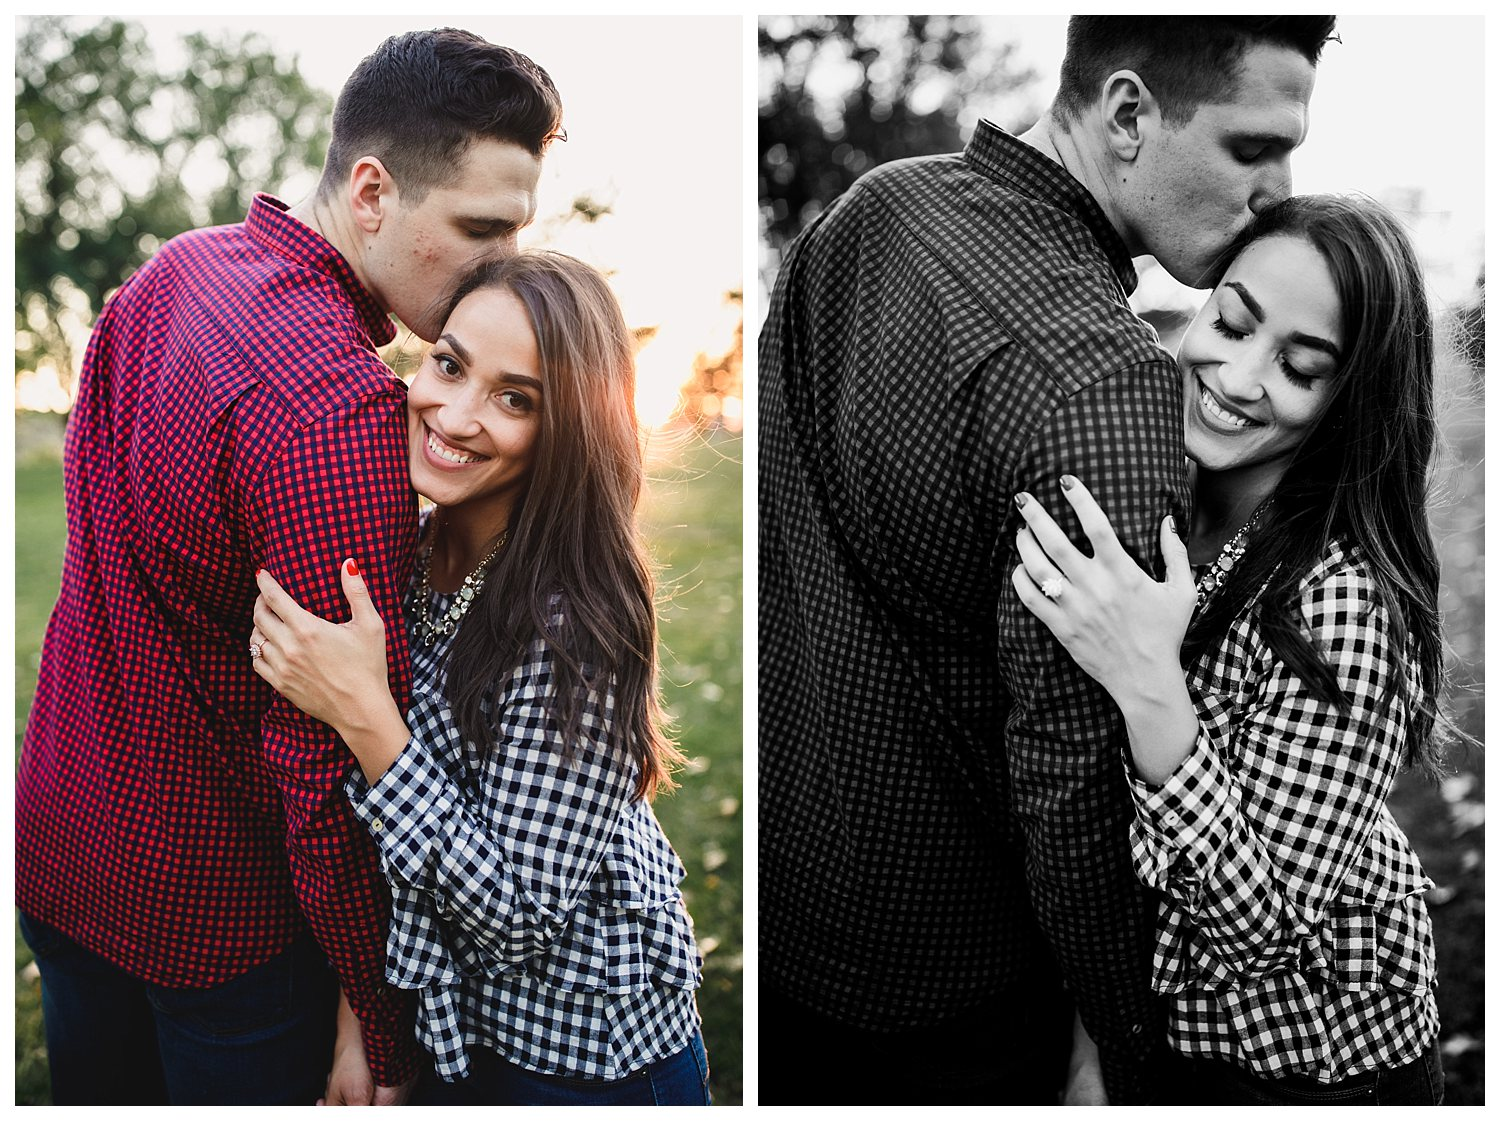 Kansas_City_Wedding_Photographer_Engagement_Kelsey_Diane_Photography_Midwest_Traveling_In_home_engagement_Session_Cassie_Austin_Parkville_Missouri_0900.jpg